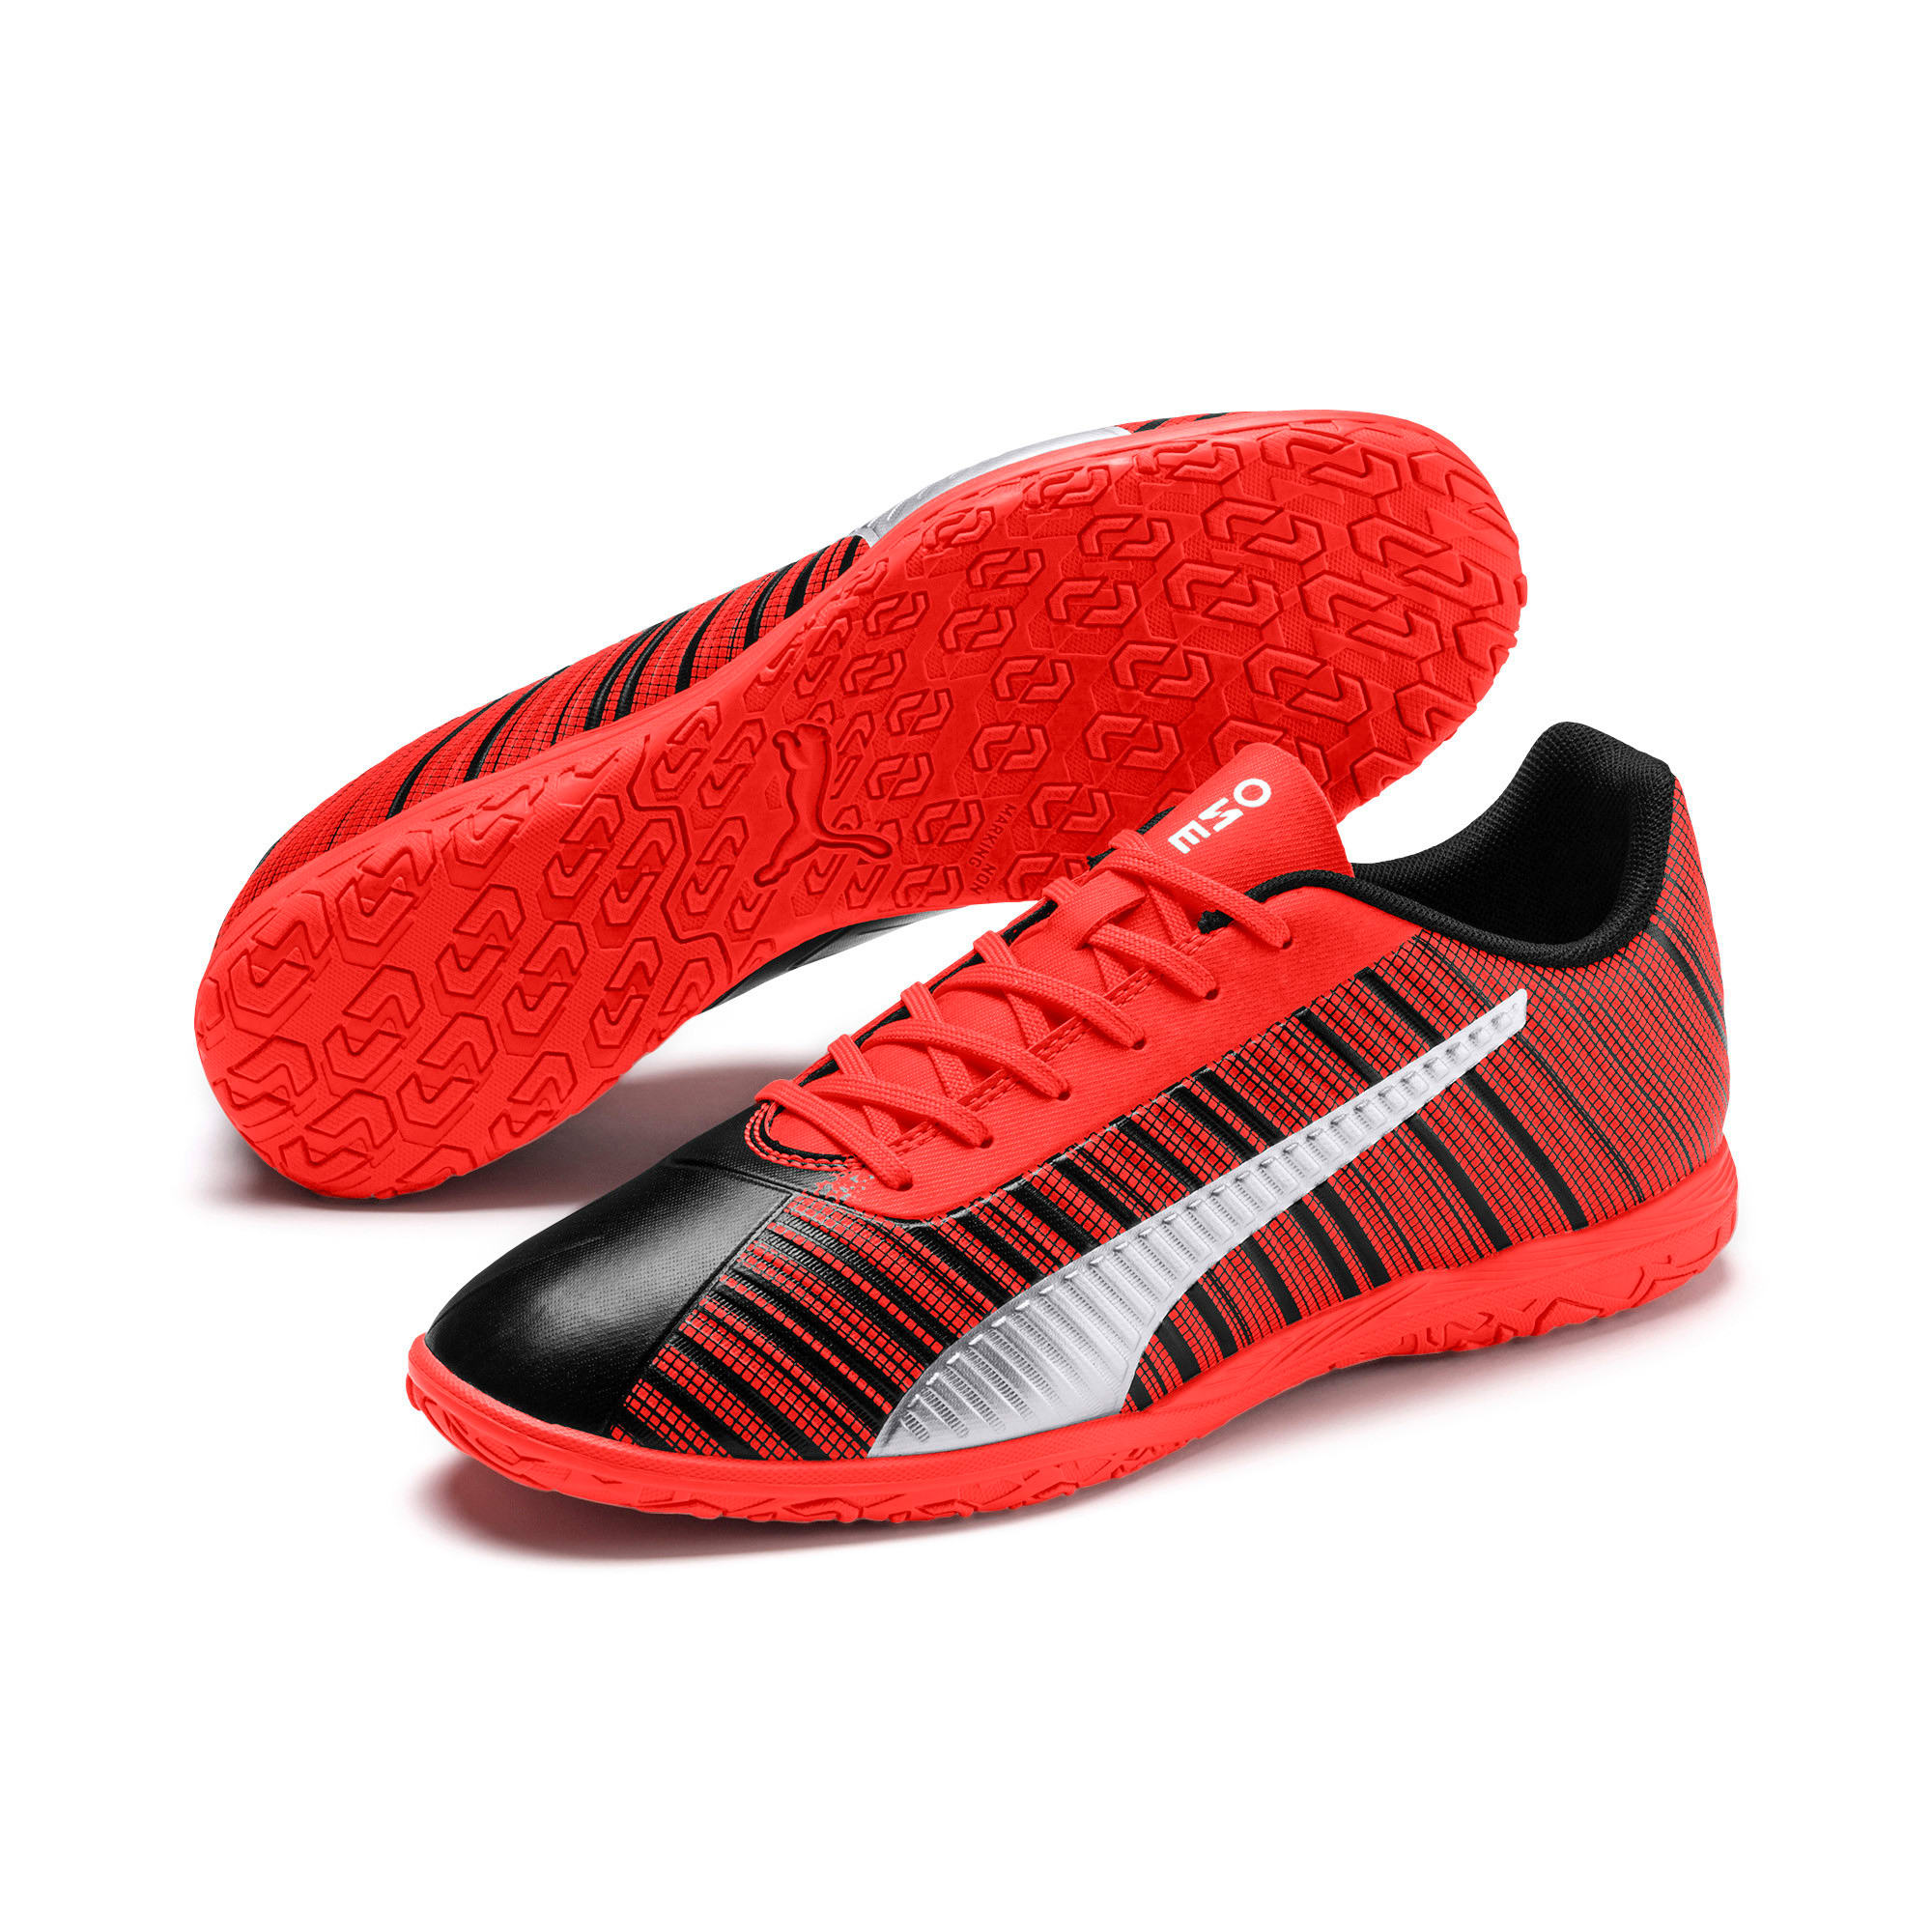 Thumbnail 3 of PUMA ONE 5.4 IT Men's Football Boots, Black-Nrgy Red-Aged Silver, medium